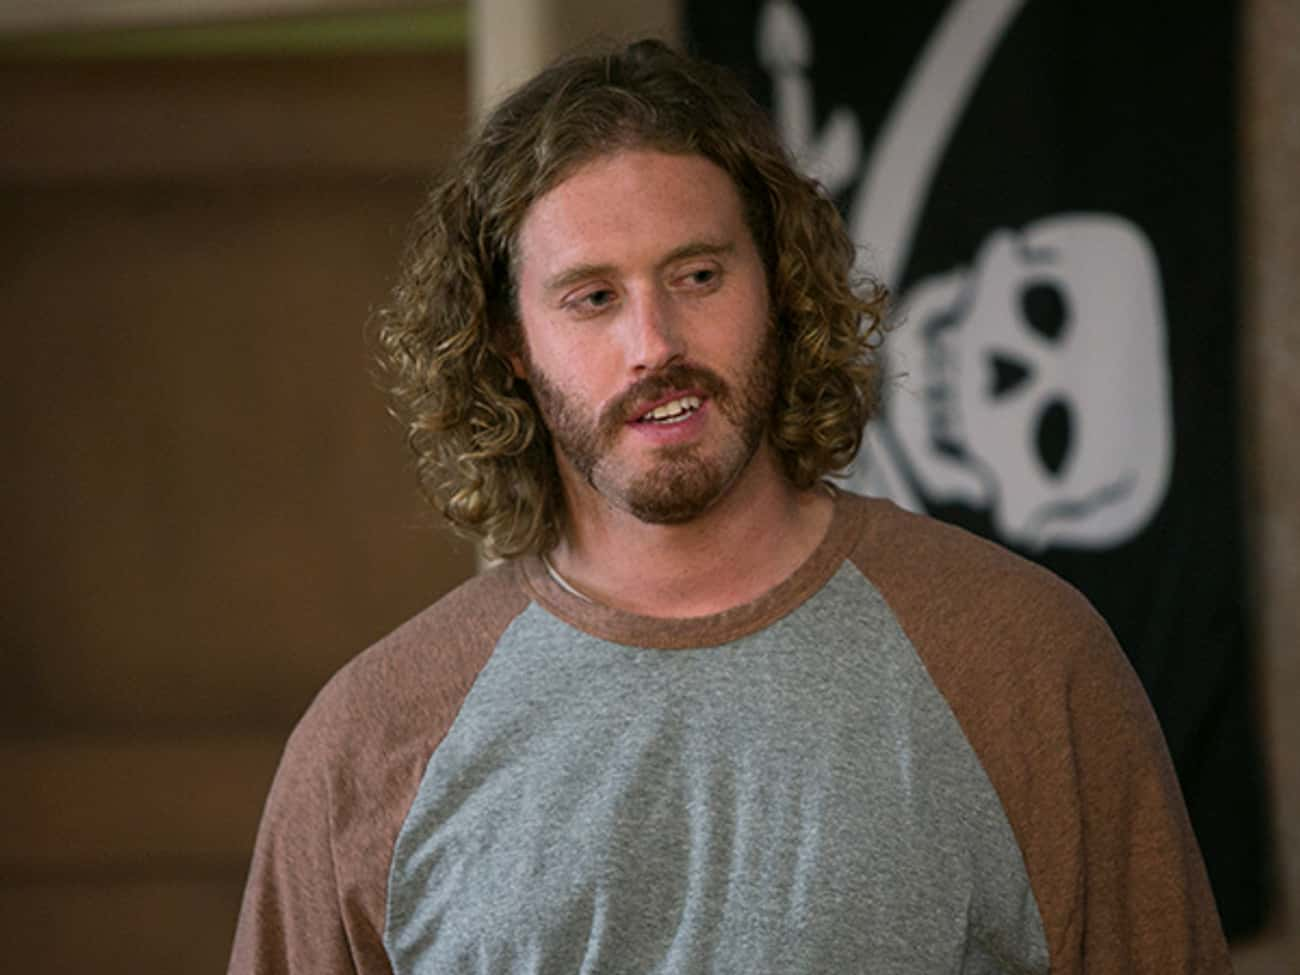 Erlich Bachman From 'Silicon V is listed (or ranked) 2 on the list 30+ Popular TV Characters Who Were Suddenly Written Off The Show (And Why)